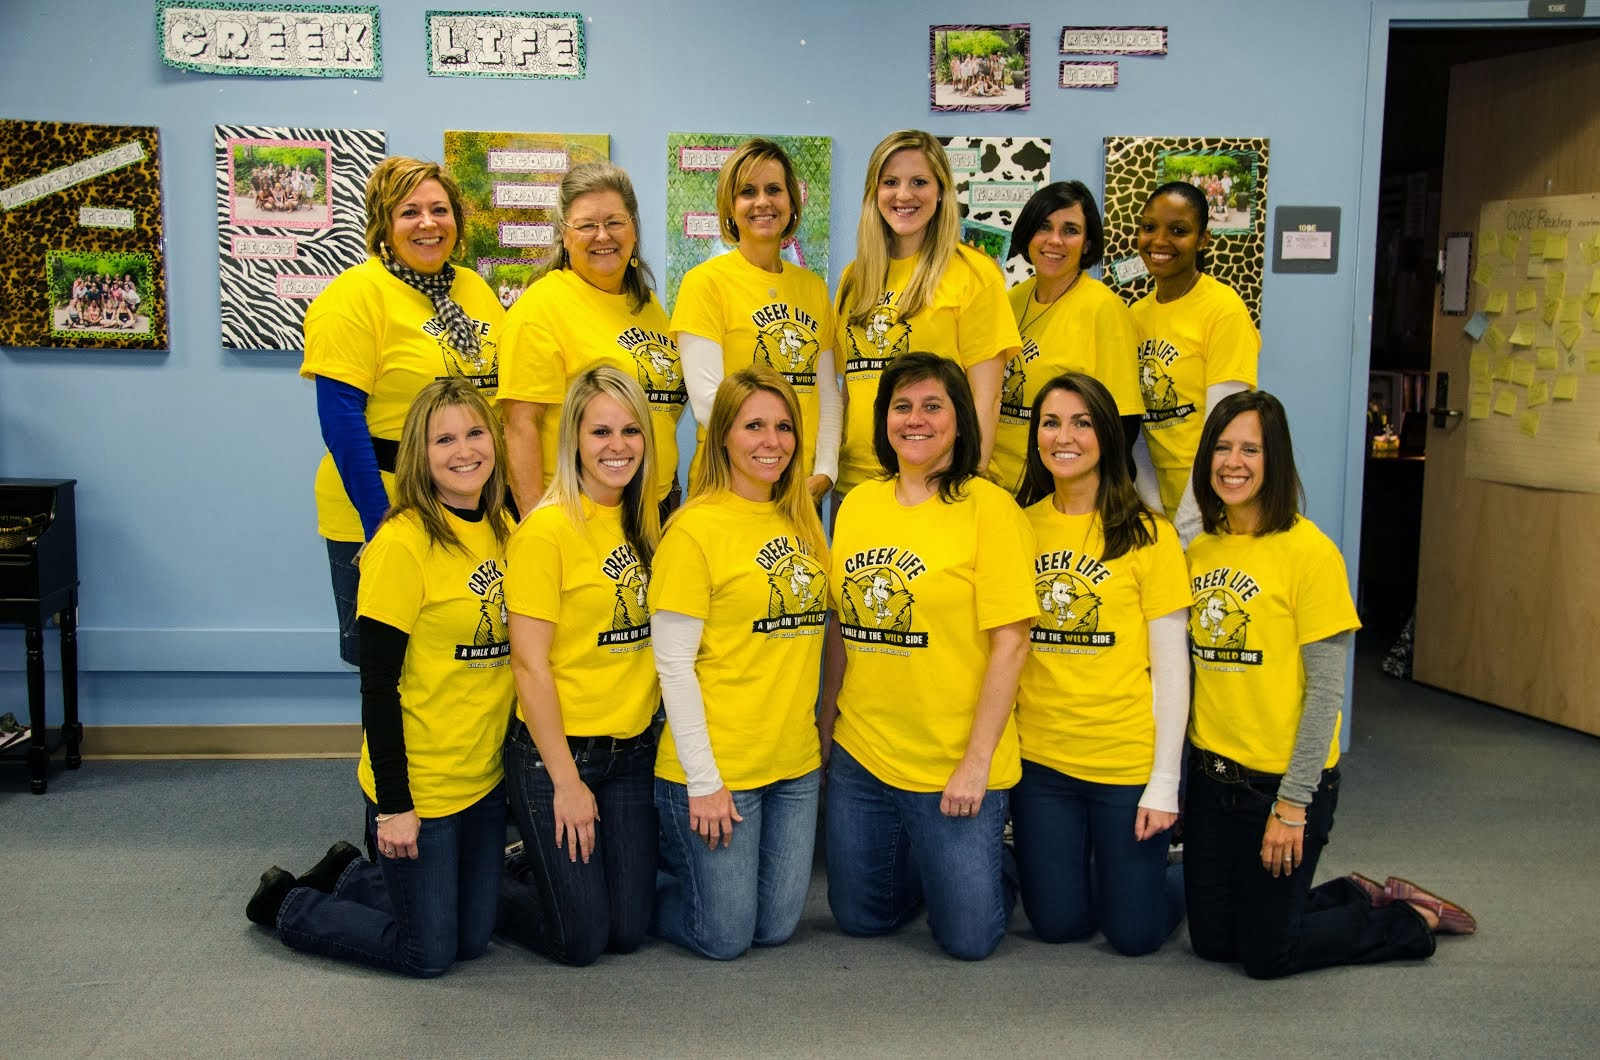 Meet the Dynamic Kindergarten Team